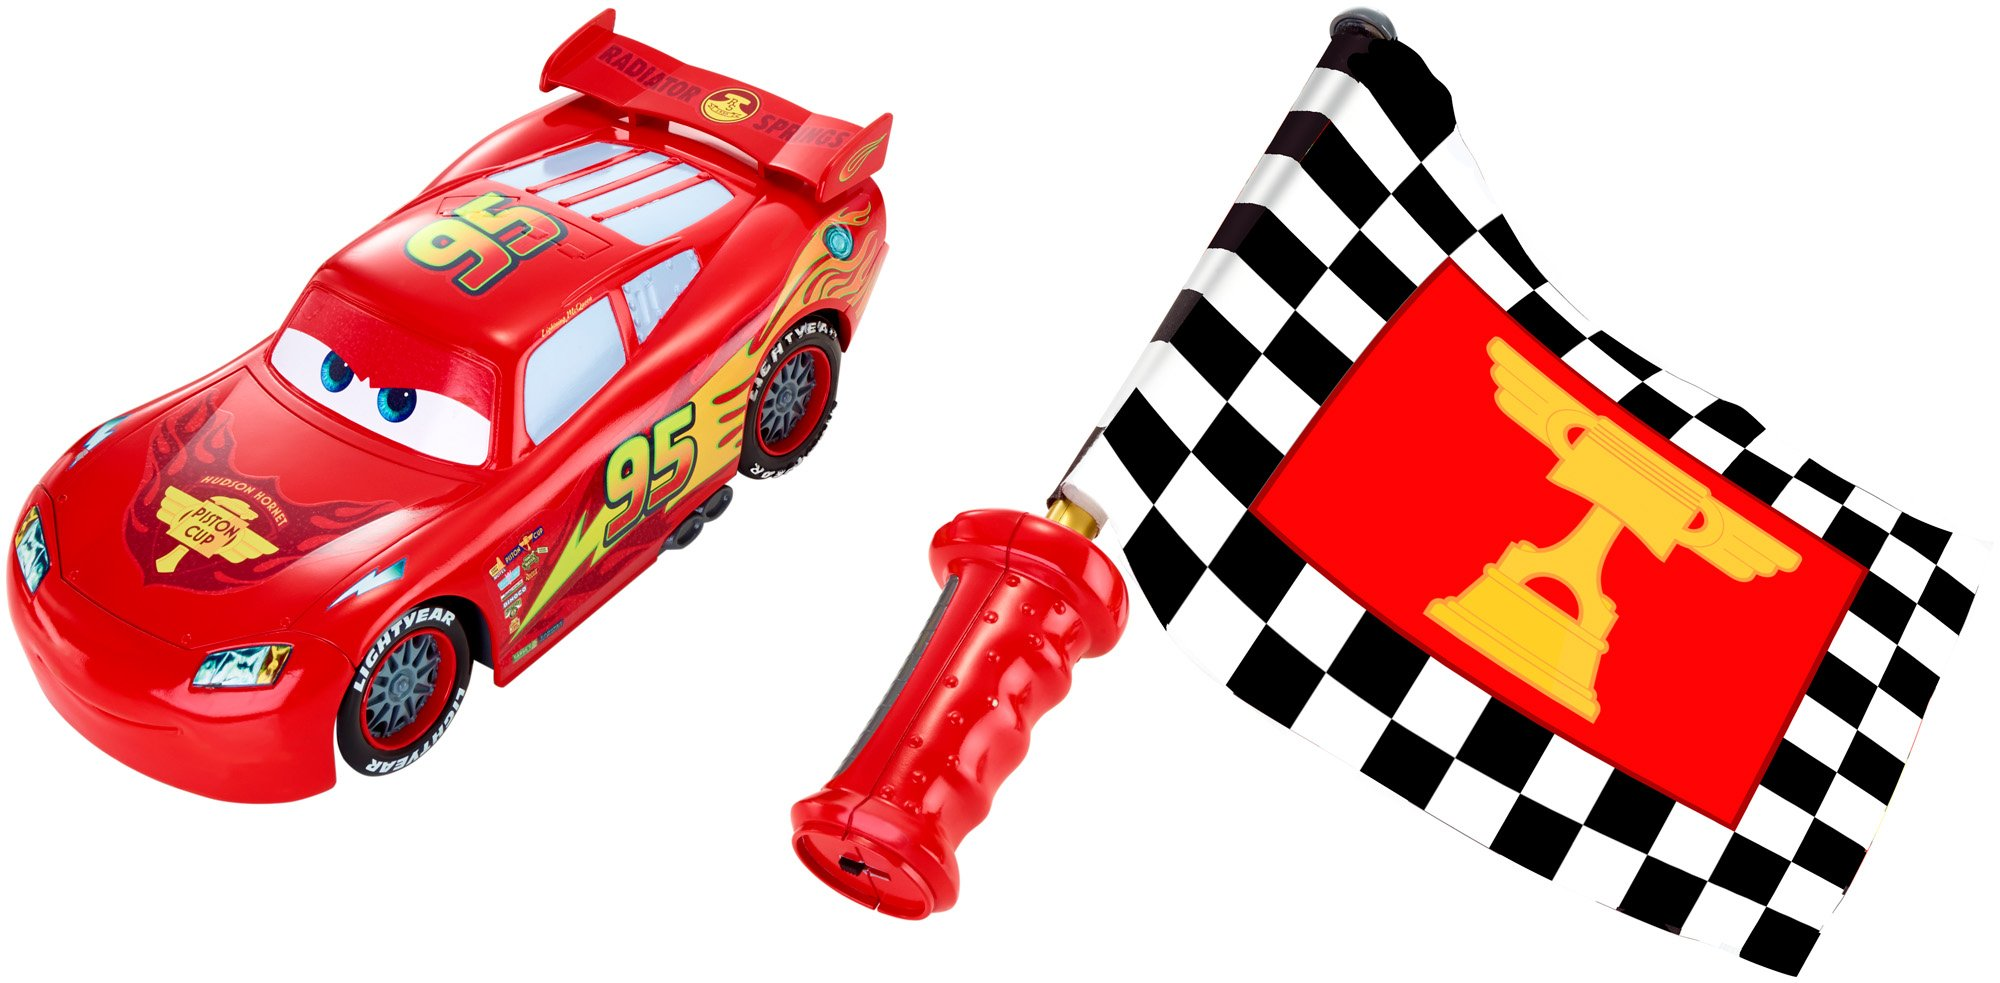 2000x983 Disneypixar Cars Flag Finish Lightning Mcqueen Toy Car Standard